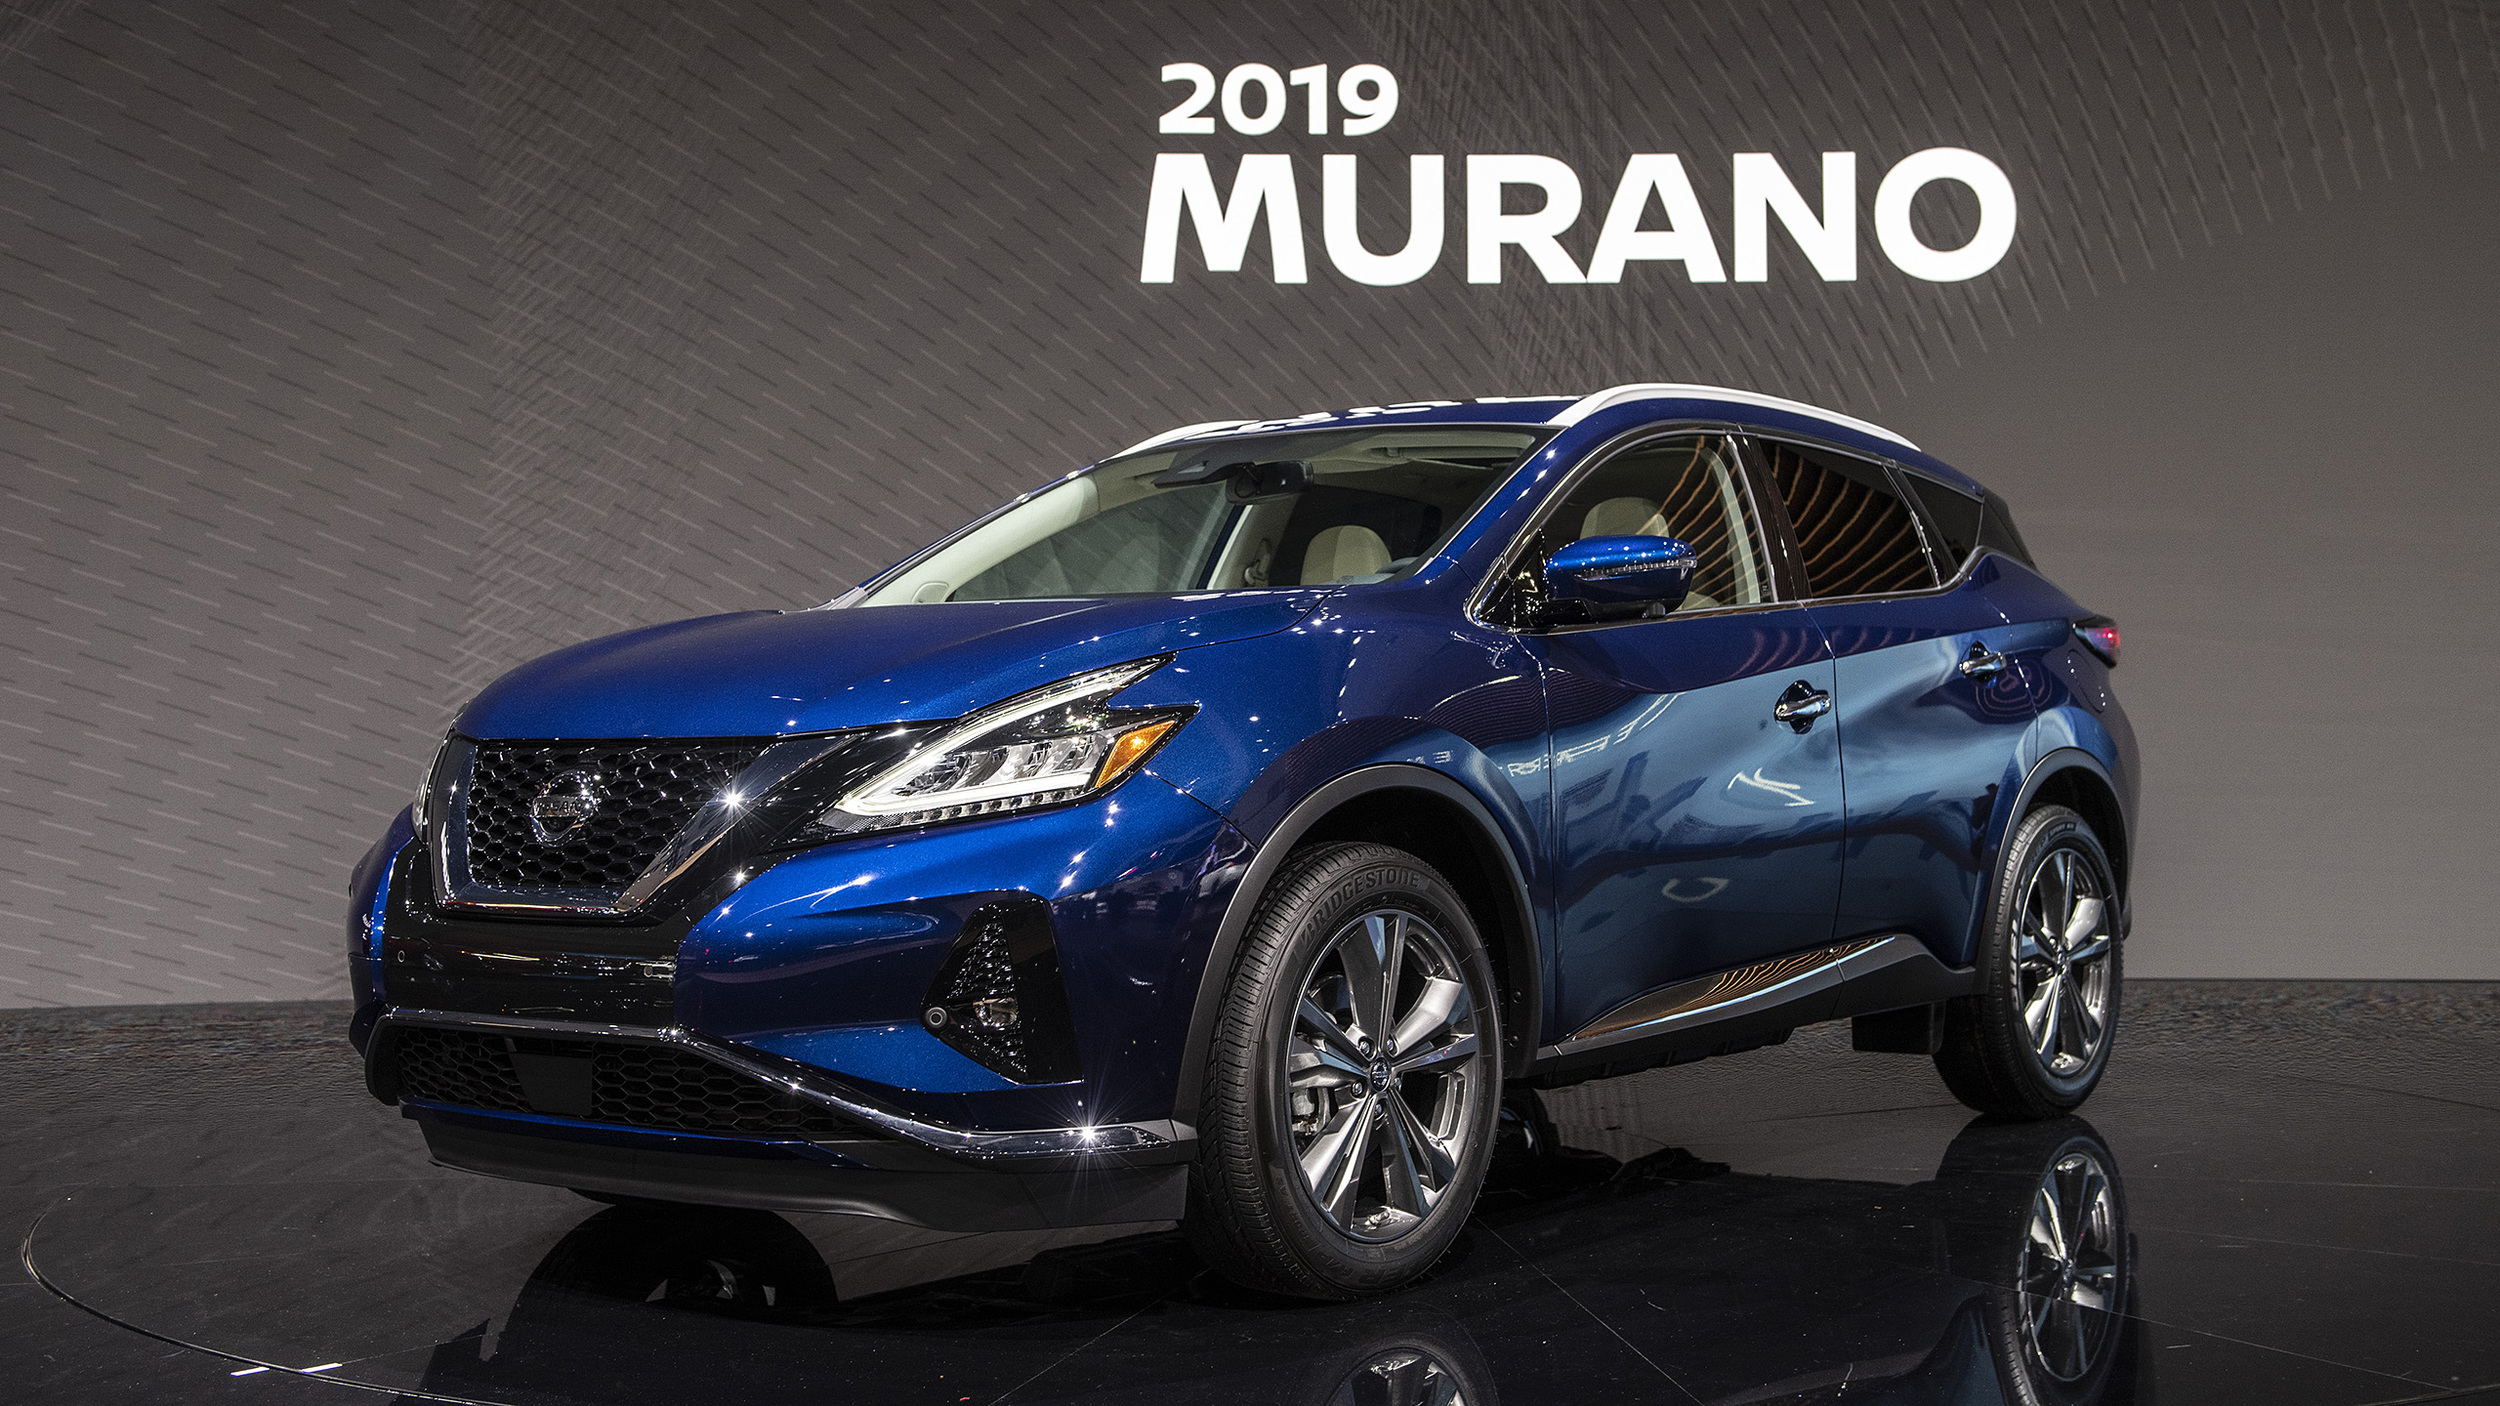 2019 Nissan Murano gets new grille, safety tech | Autoblog